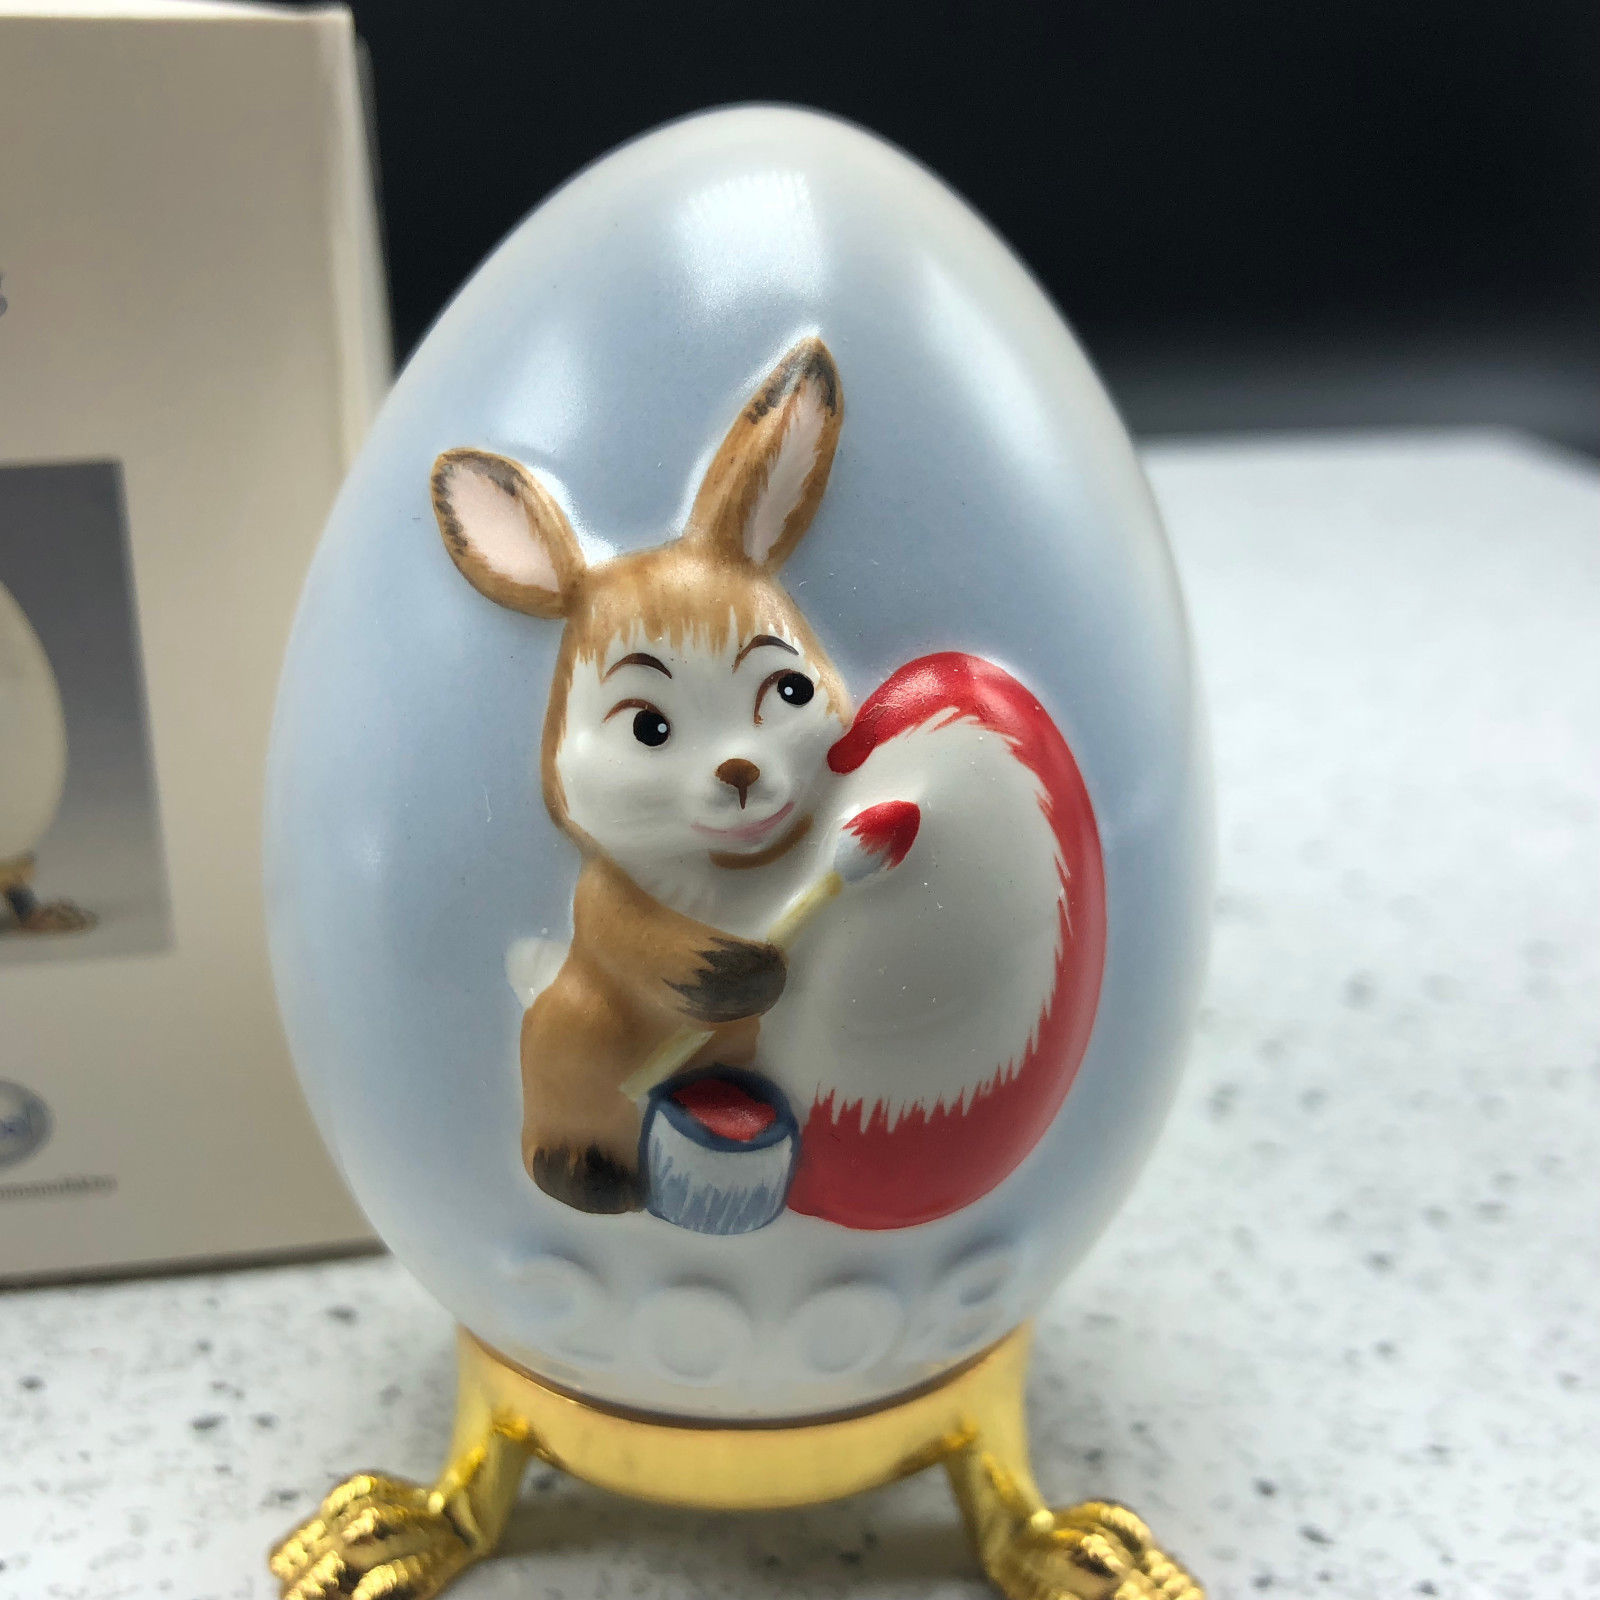 2008 GOEBEL ANNUAL EASTER EGG West Germany 31st edition figurine 102662 bunny UK